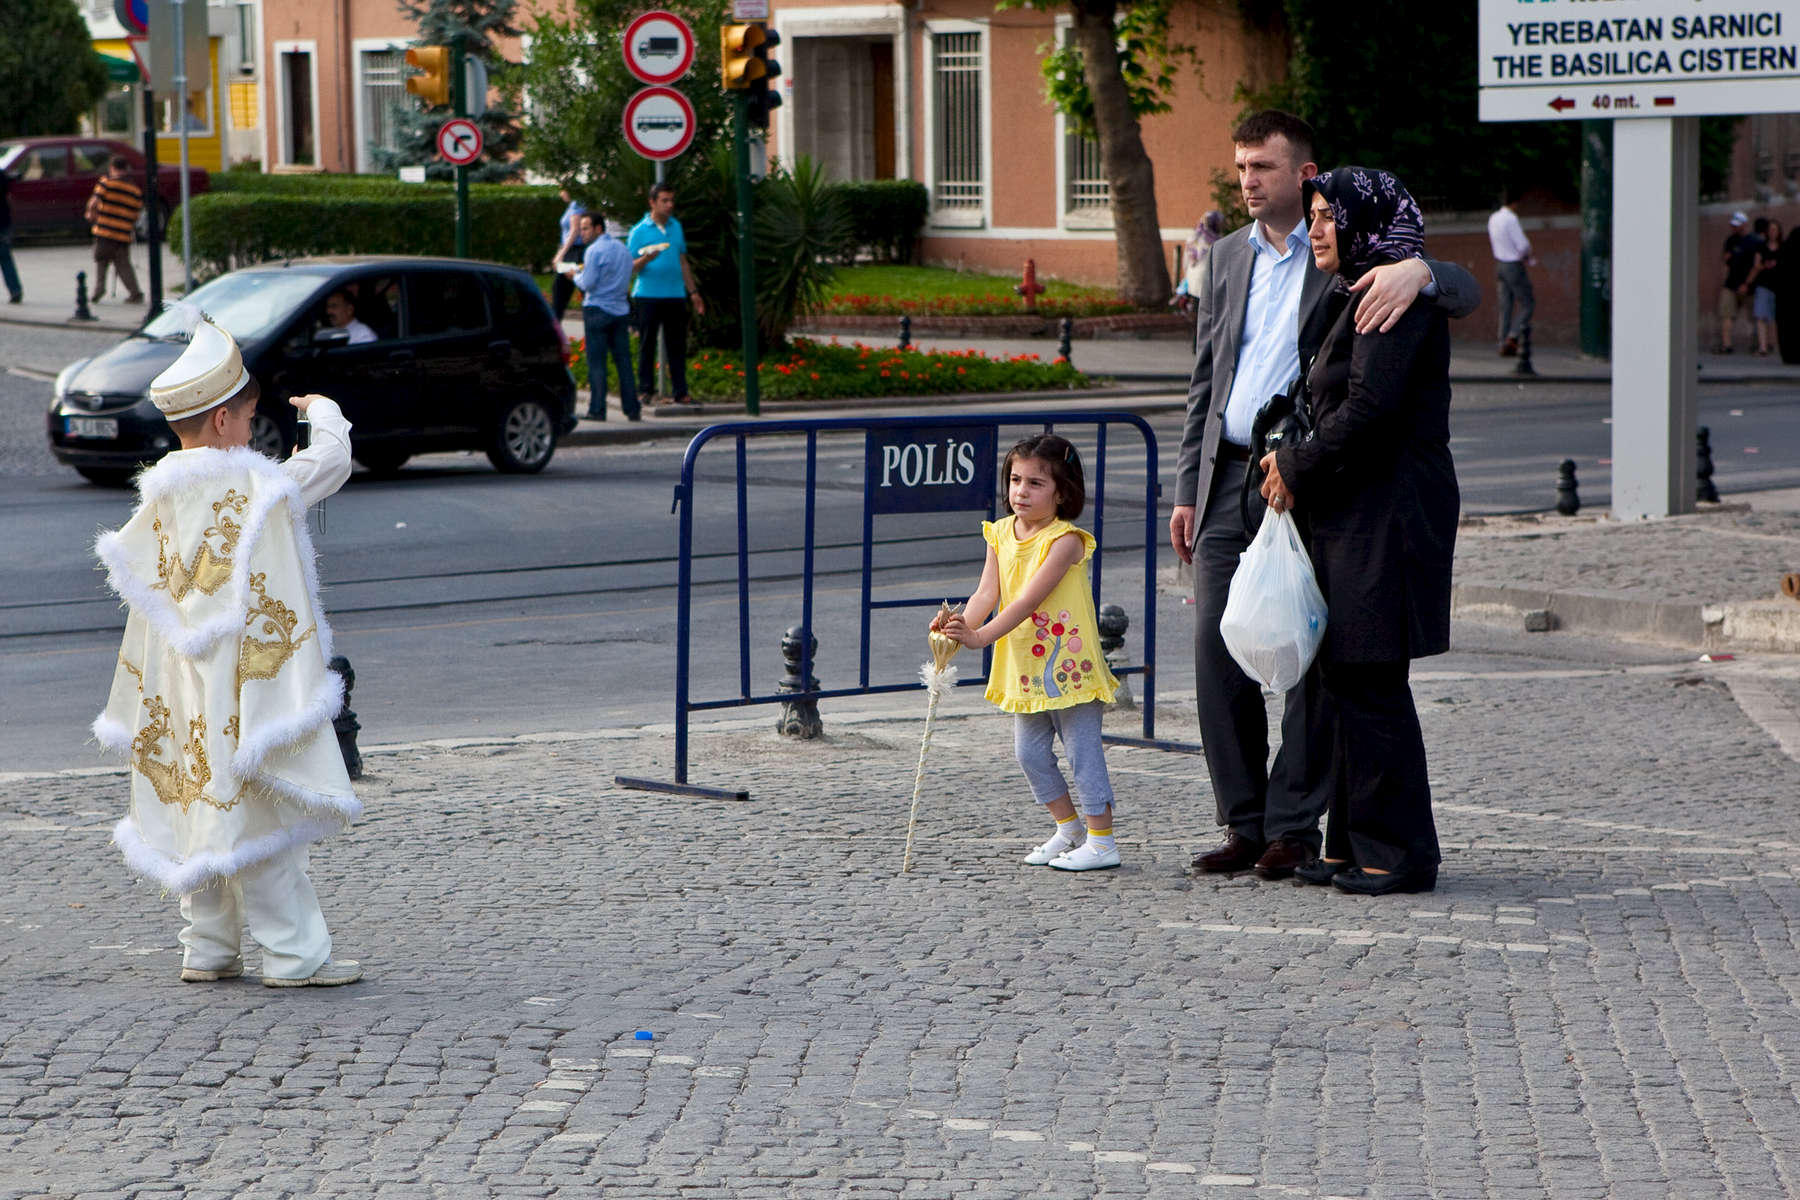 On the way to his sünnet (circumcision), a Turkish boy stops to photograph his family in the historic Sultanahmet district. Turkish boys are normally circumcised between childhood and adolescence, and the event is cause for great celebration as a ritual passage into manhood. Those circumcised are feted, feasted, and treated as {quote}Kings for a Day{quote}.